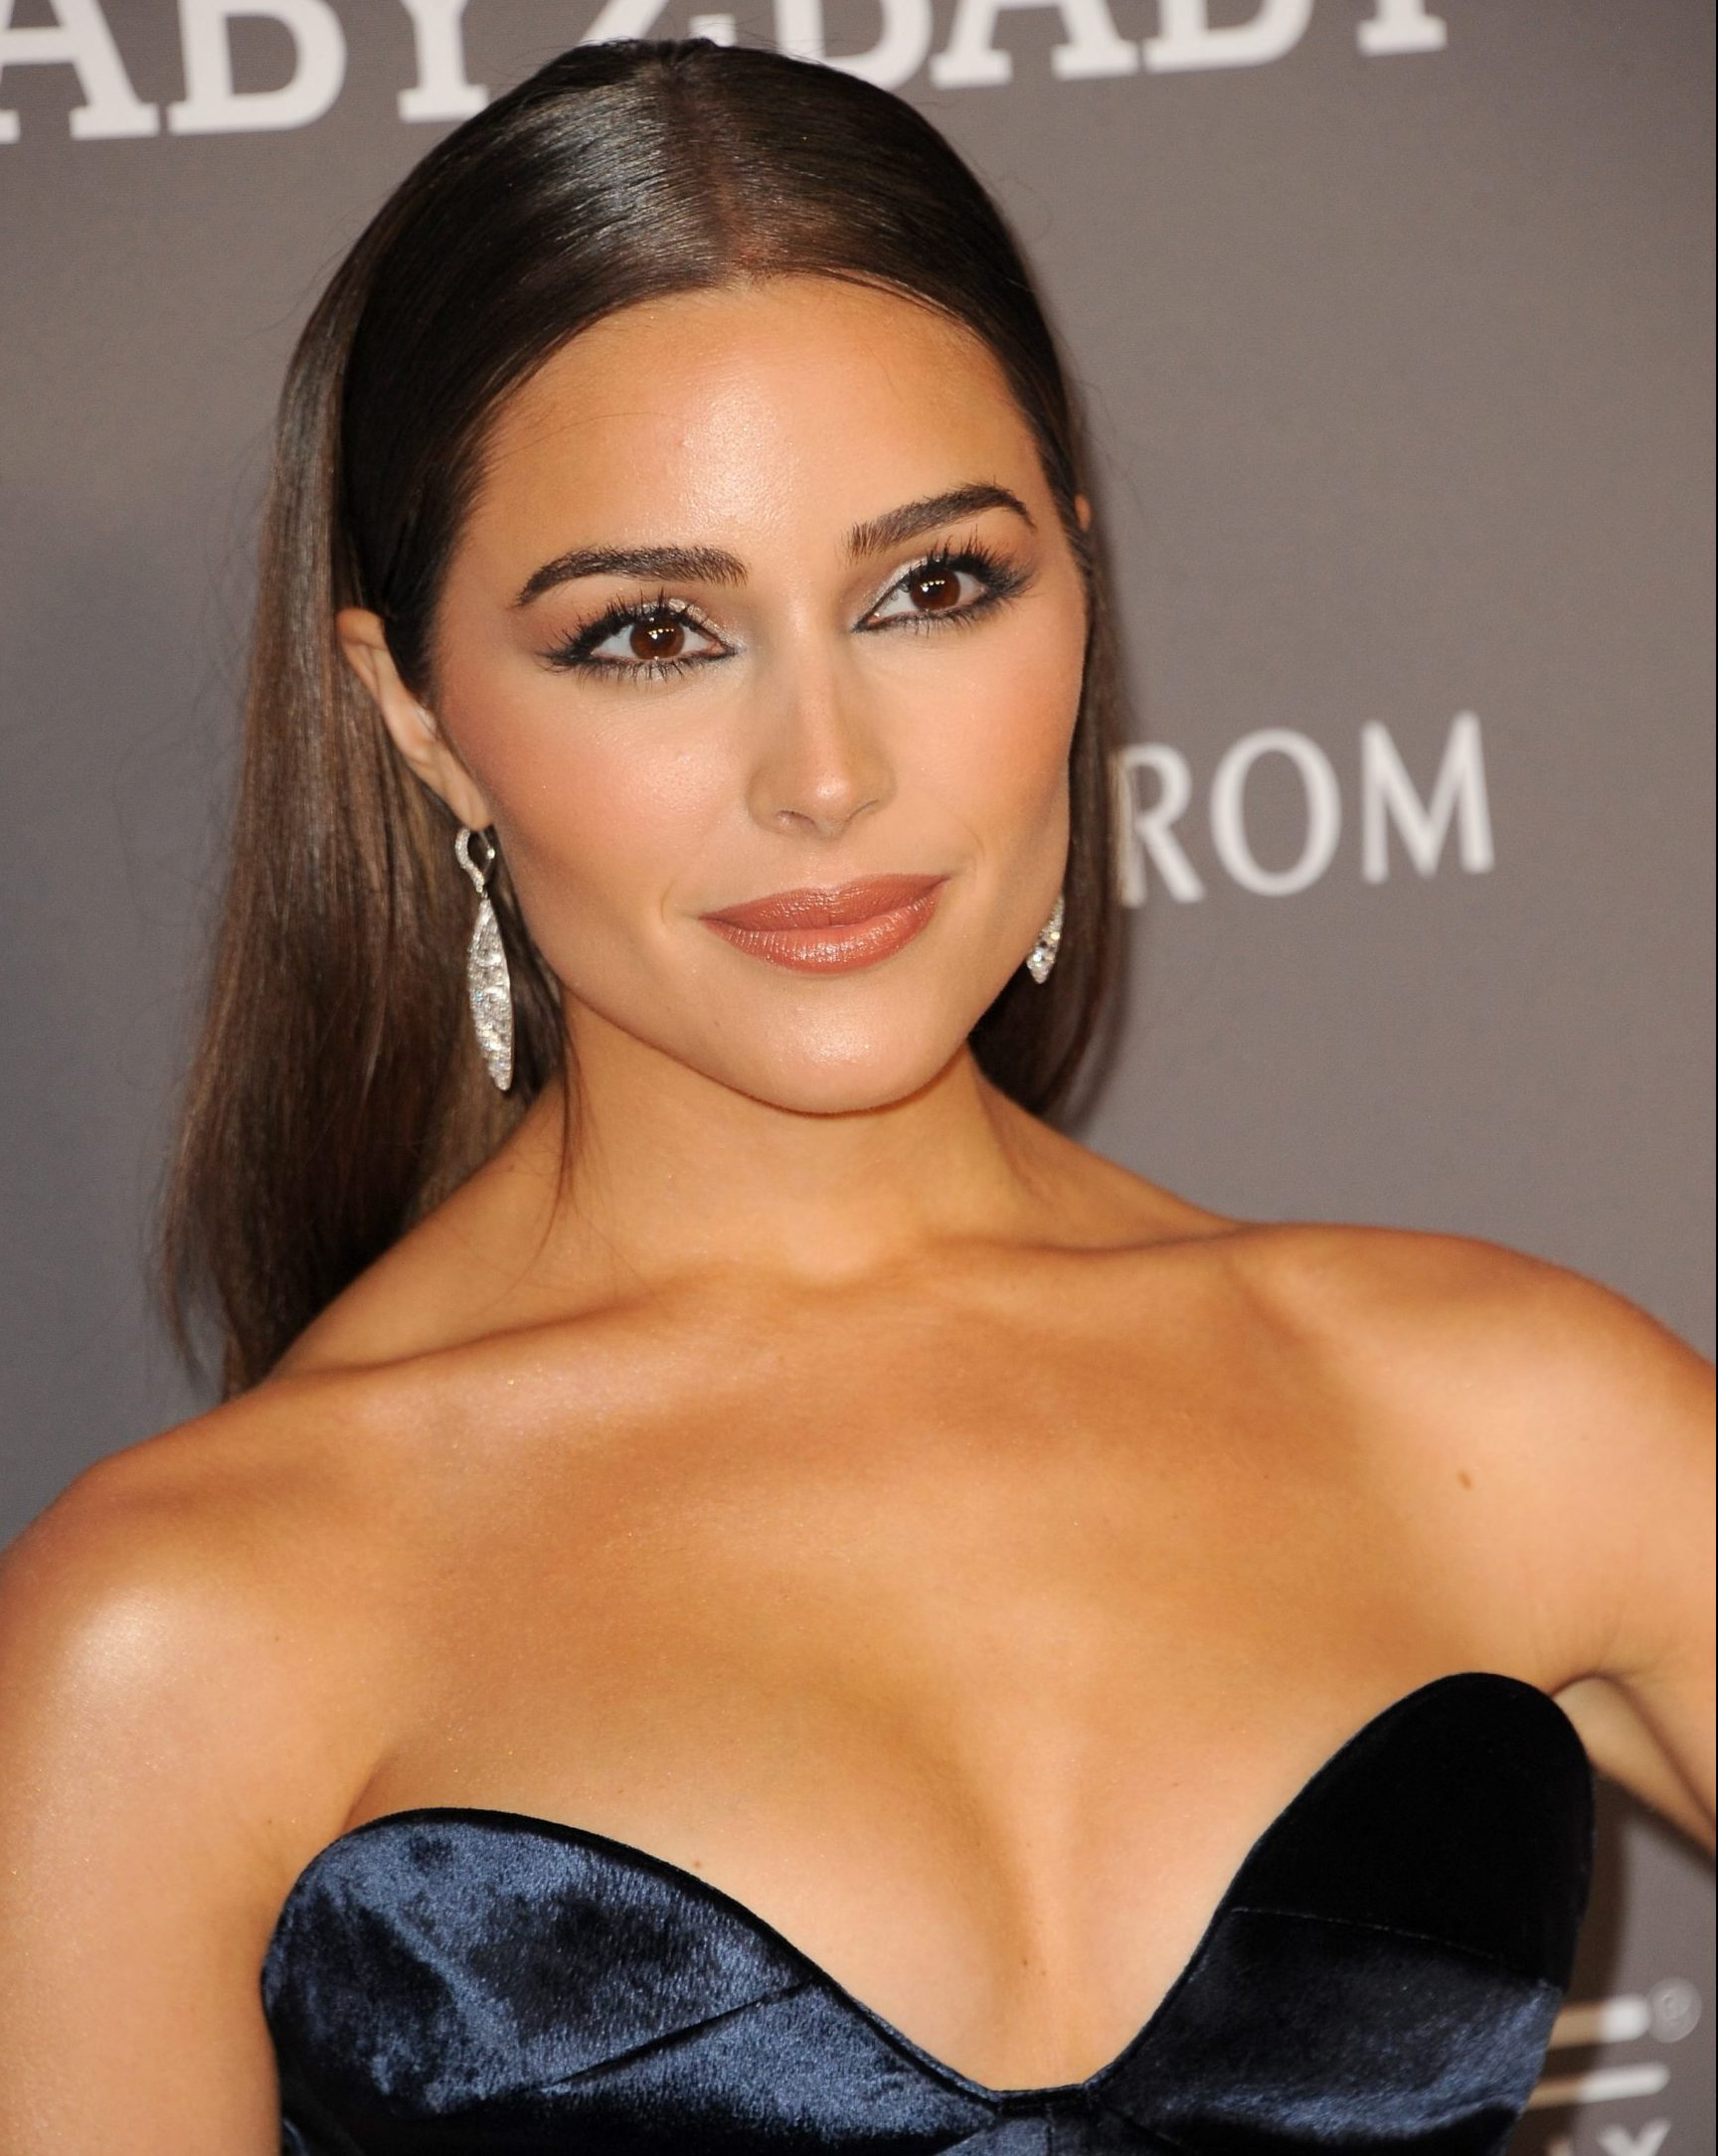 Actress Olivia Culpo wears a strapless navy dress, has her long brown hair out, behind her shoulders and sparkling earrings that dangle next to her neck. She is smiling at a red carpet event.